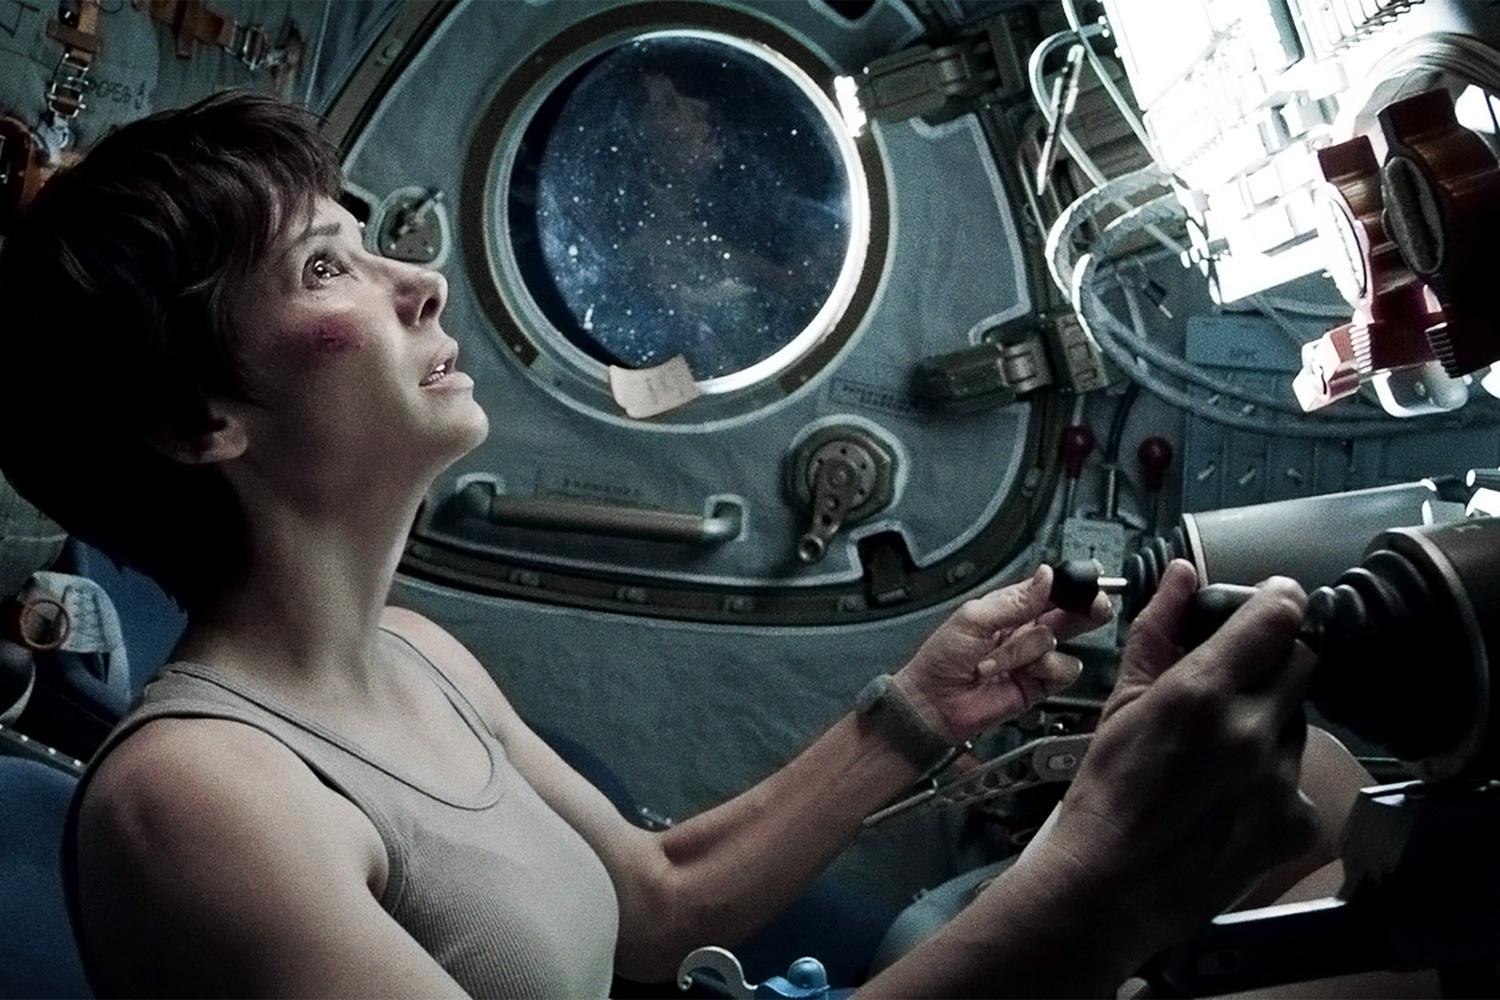 One Mann S Movies Film Review Gravity 2013 One Mann S Movies